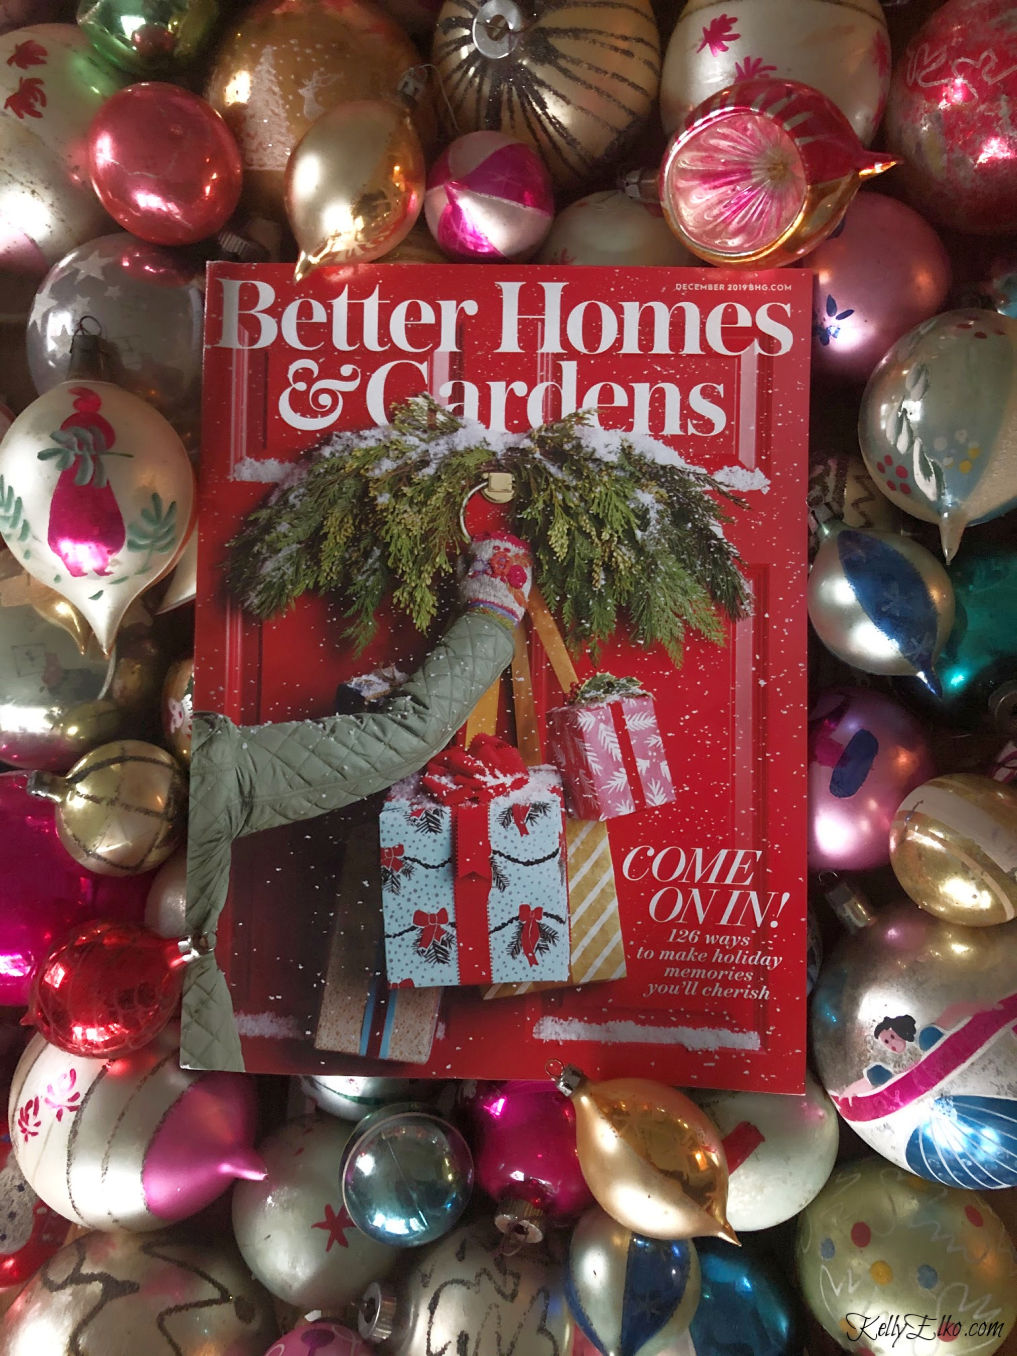 Better Homes & Gardens Christmas